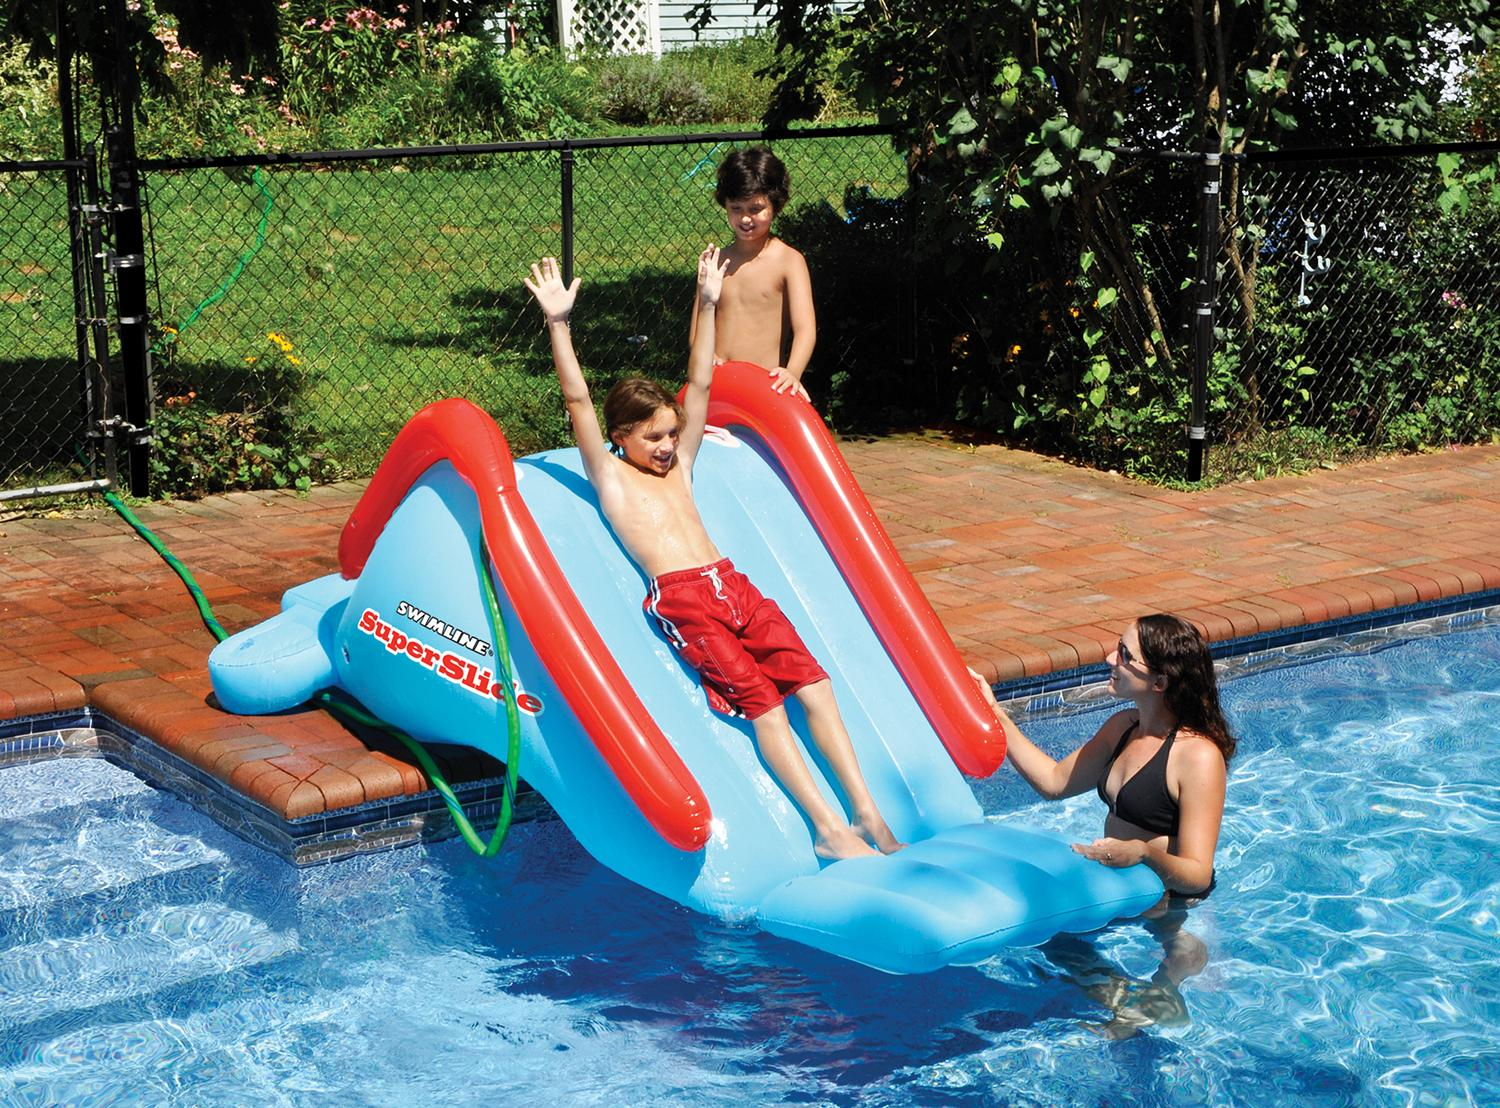 Blue and Red Water Sports Inflatable Super Slide Swimming Pool Toy, 94-Inch by Swim Central